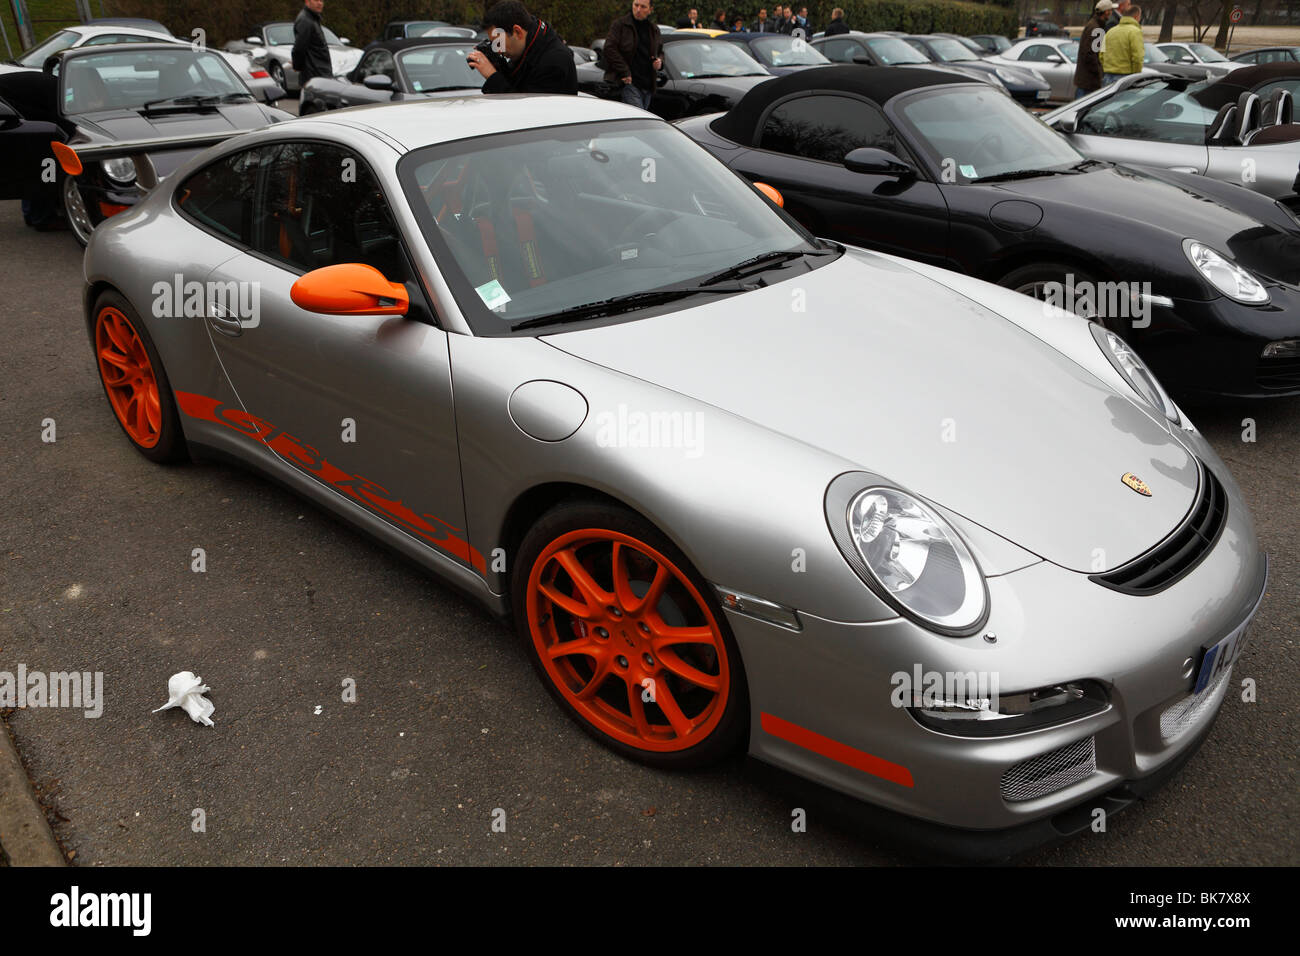 porsche 997 gt3 rs gray and orange stock photo royalty free image 29063130 alamy. Black Bedroom Furniture Sets. Home Design Ideas